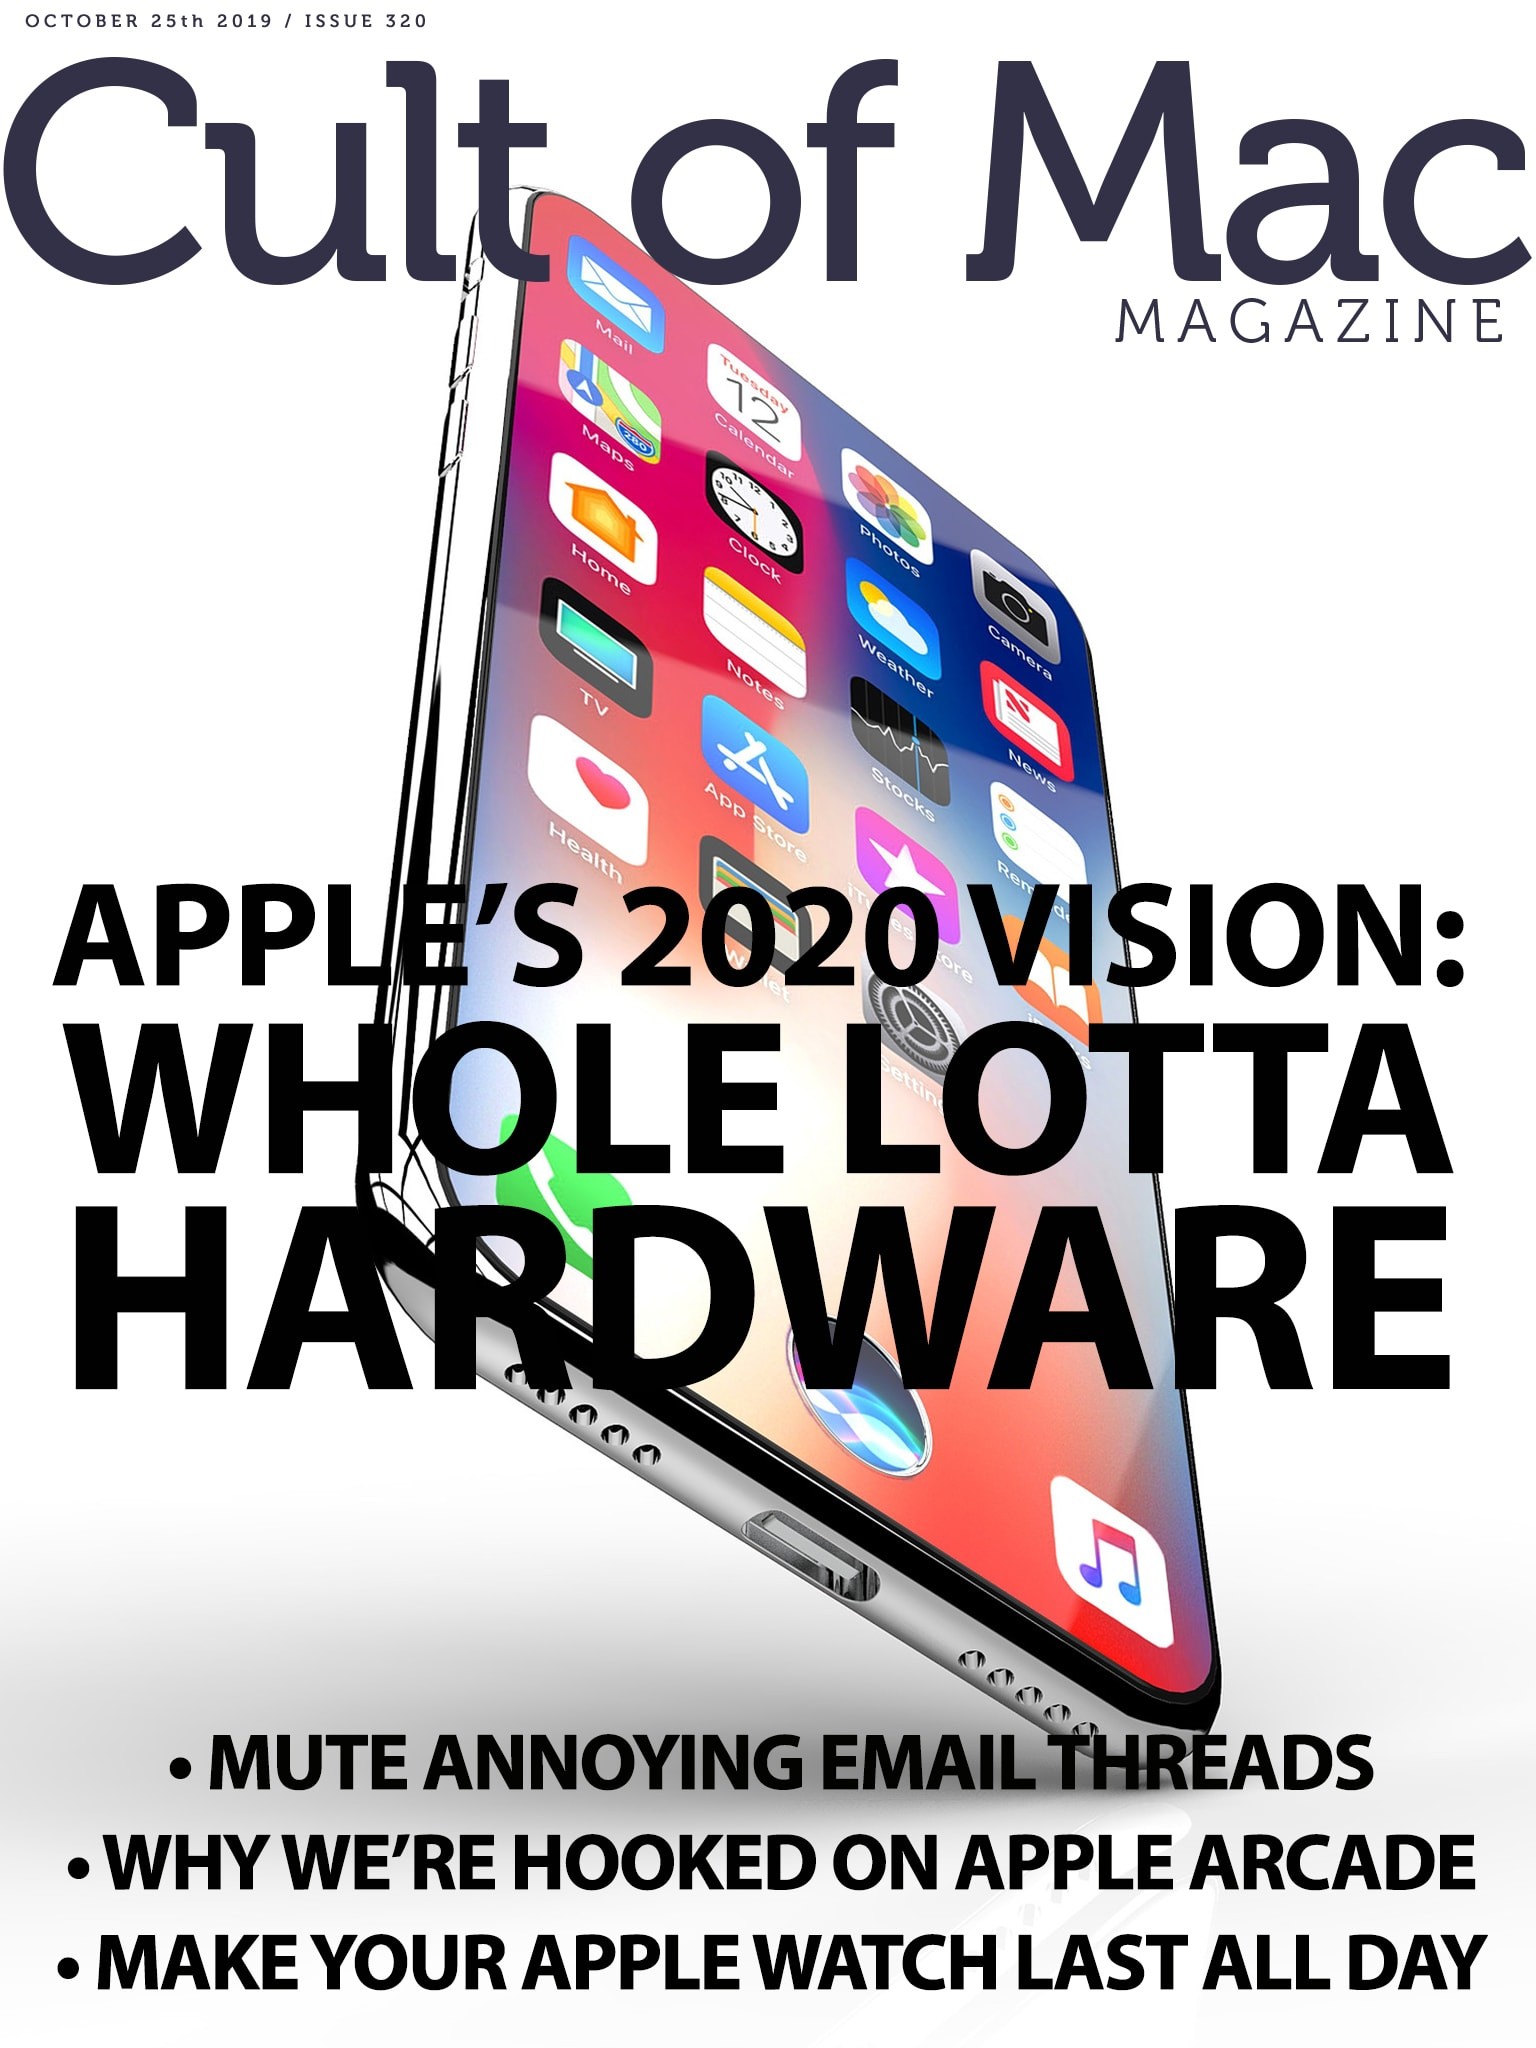 Apple's 2020 vision: Whole lotta hardware